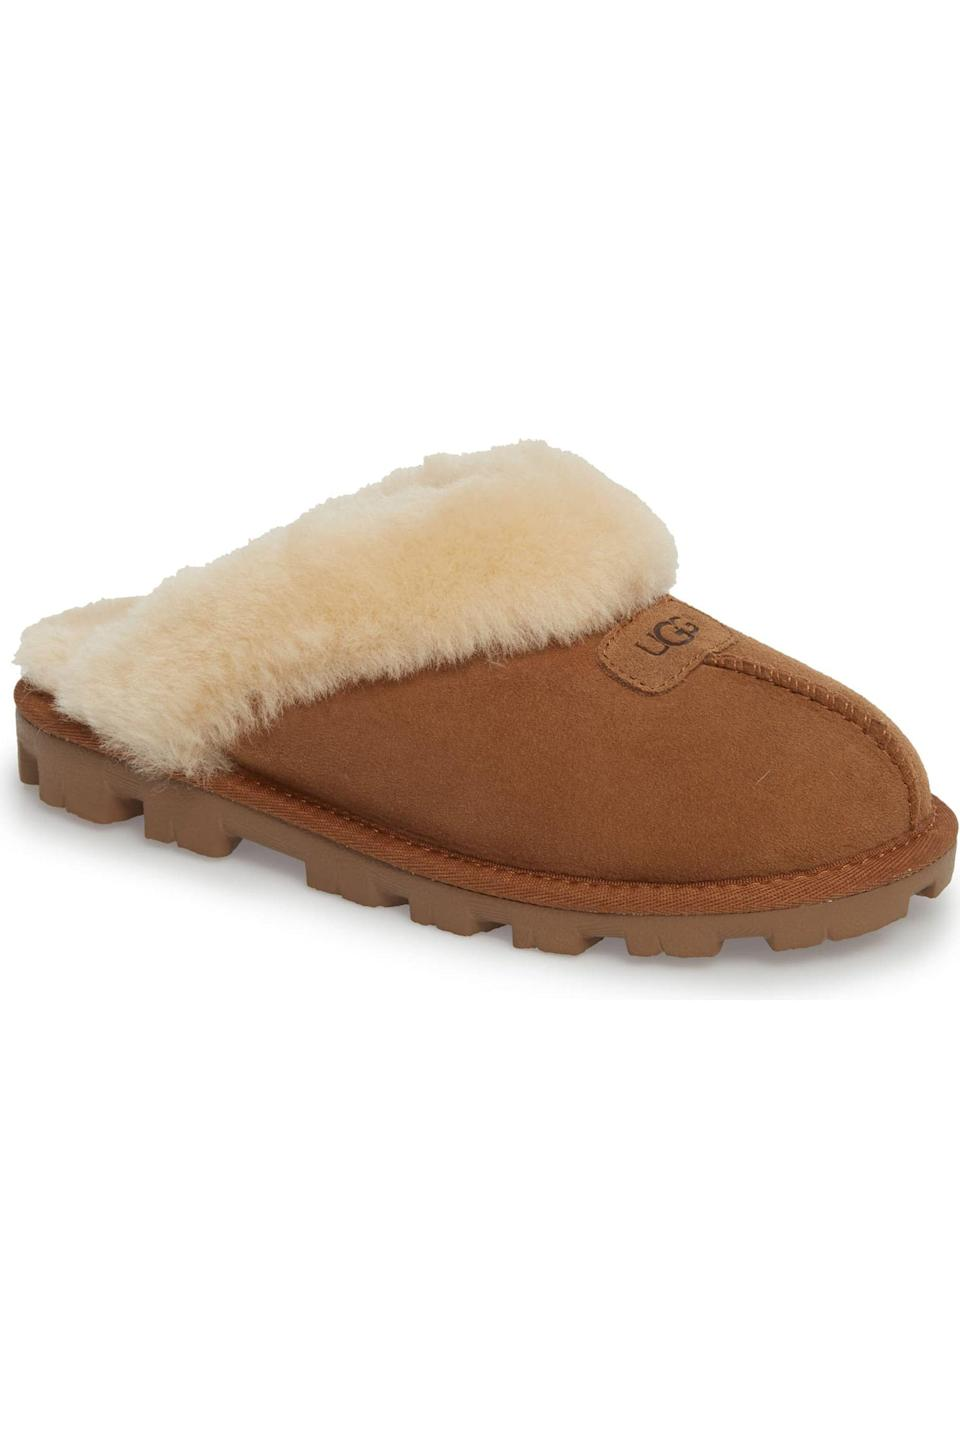 """<p><strong>UGG</strong></p><p>nordstrom.com</p><p><strong>$89.96</strong></p><p><a href=""""https://go.redirectingat.com?id=74968X1596630&url=https%3A%2F%2Fshop.nordstrom.com%2Fs%2Fugg-genuine-shearling-slipper-women%2F2836854&sref=https%3A%2F%2Fwww.elle.com%2Ffashion%2Fg28509176%2Fcozy-gift-guide%2F"""" rel=""""nofollow noopener"""" target=""""_blank"""" data-ylk=""""slk:Shop Now"""" class=""""link rapid-noclick-resp"""">Shop Now</a></p><p>""""I have been living in my Ugg Coquette slippers! They are the coziest I've ever owned. And bonus, they also have rubber soles, so I may never have to go back to real shoes!""""– Jade Vallario, Accessories Editor</p>"""